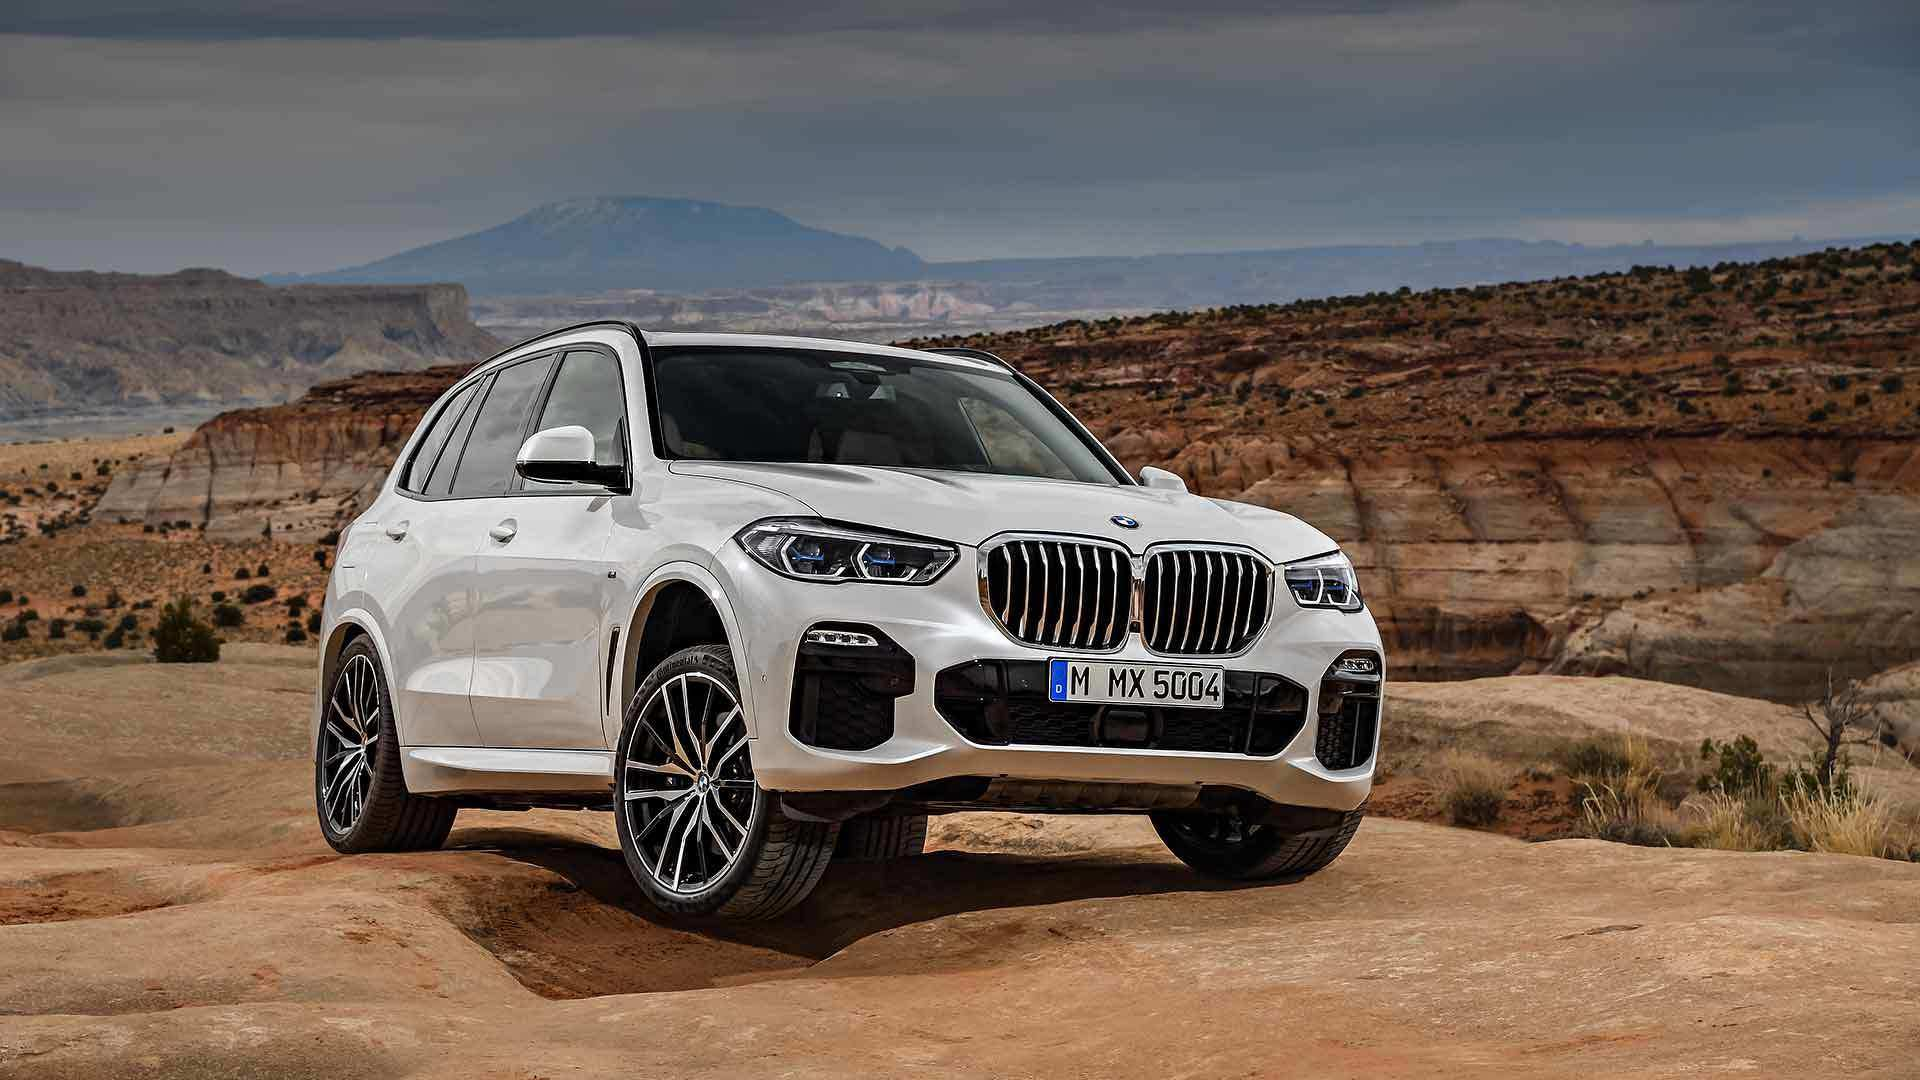 23 Great 2019 Bmw X5 Release Date New Concept for 2019 Bmw X5 Release Date